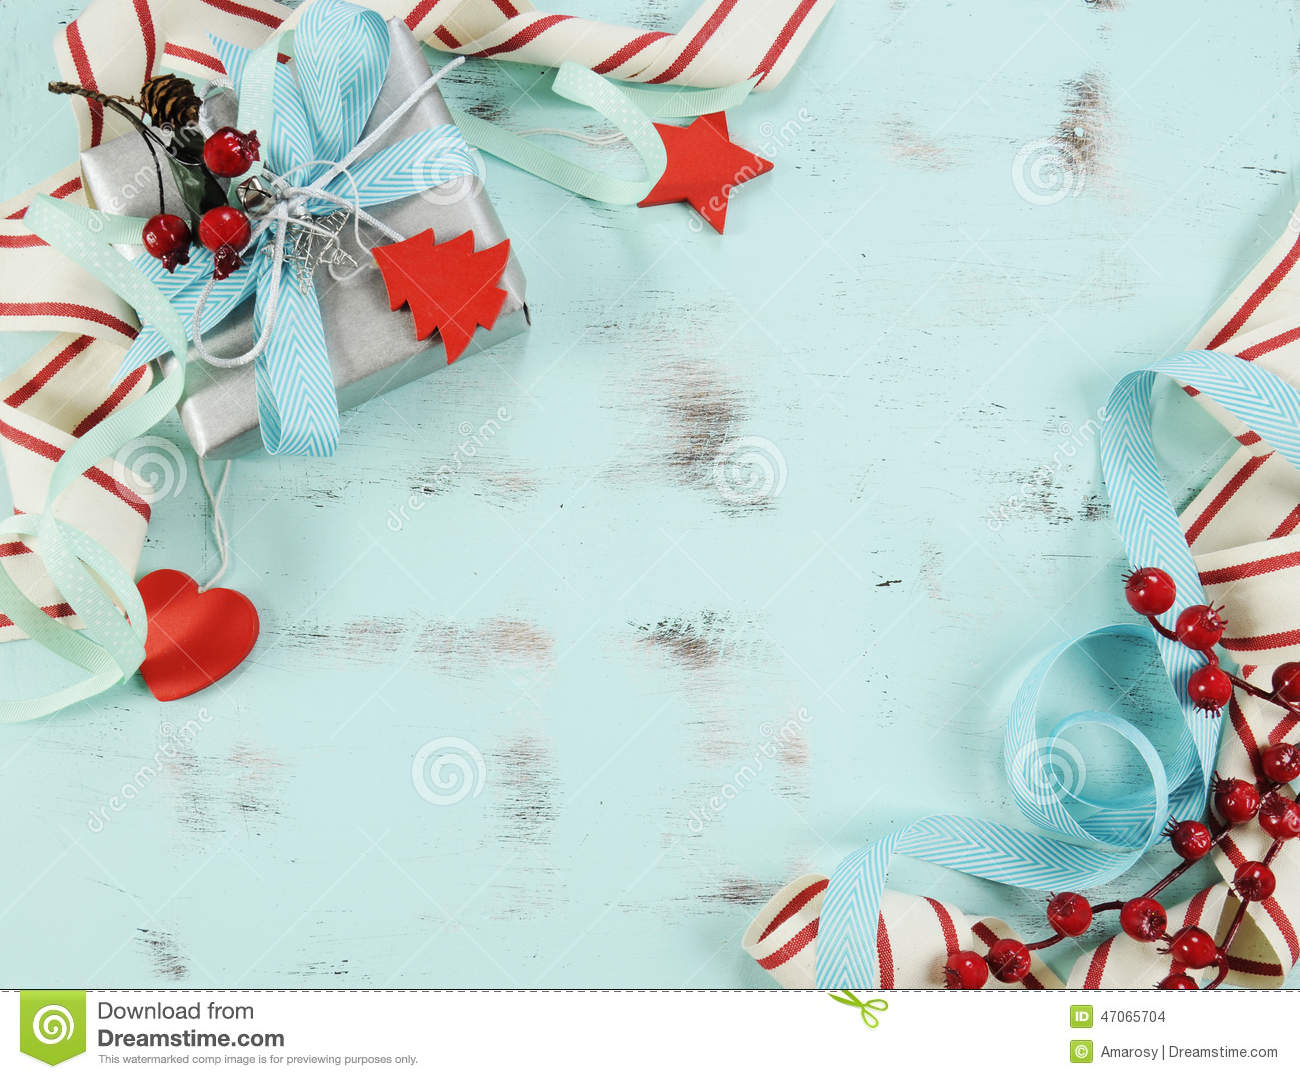 modern red and white christmas decorations on aqua blue wood background